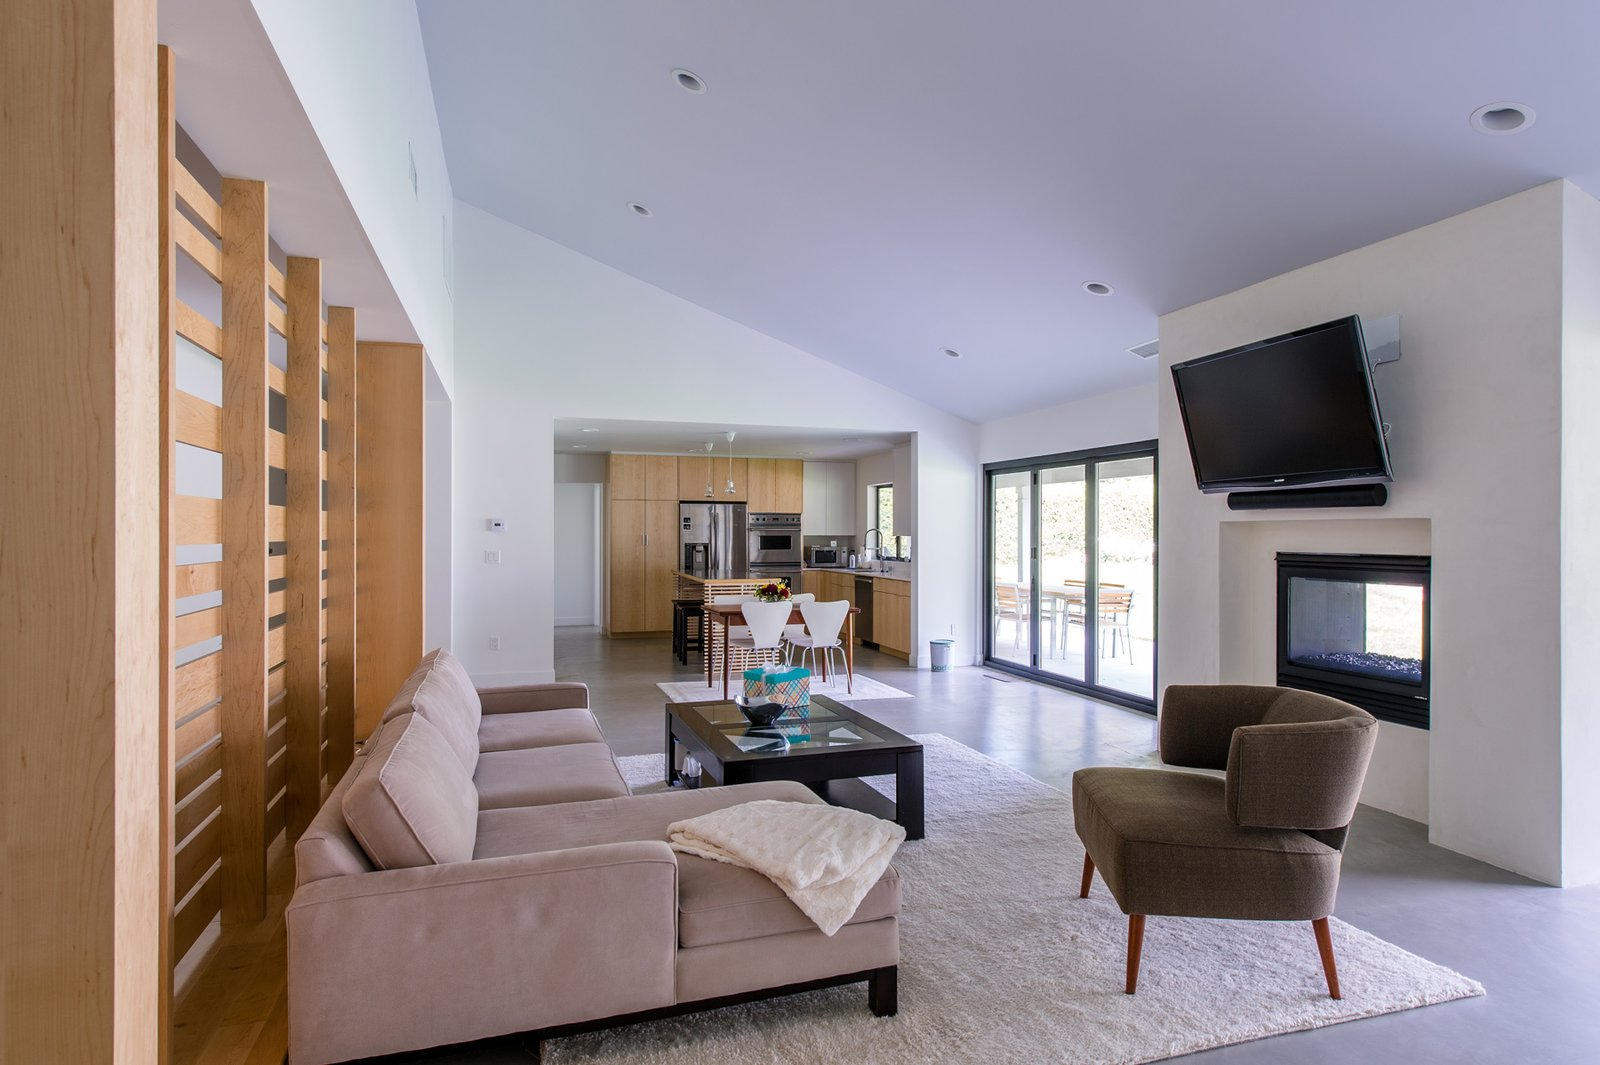 Living Room, Chair, Sofa, Table, Ceiling Lighting, Concrete Floor, and Two-Sided Fireplace The open floor plan features a bi-folding door system and dual-sided fireplace to provide a strong connection to the rear landscape and views.  Villa Park Modern by MYD studio, inc.